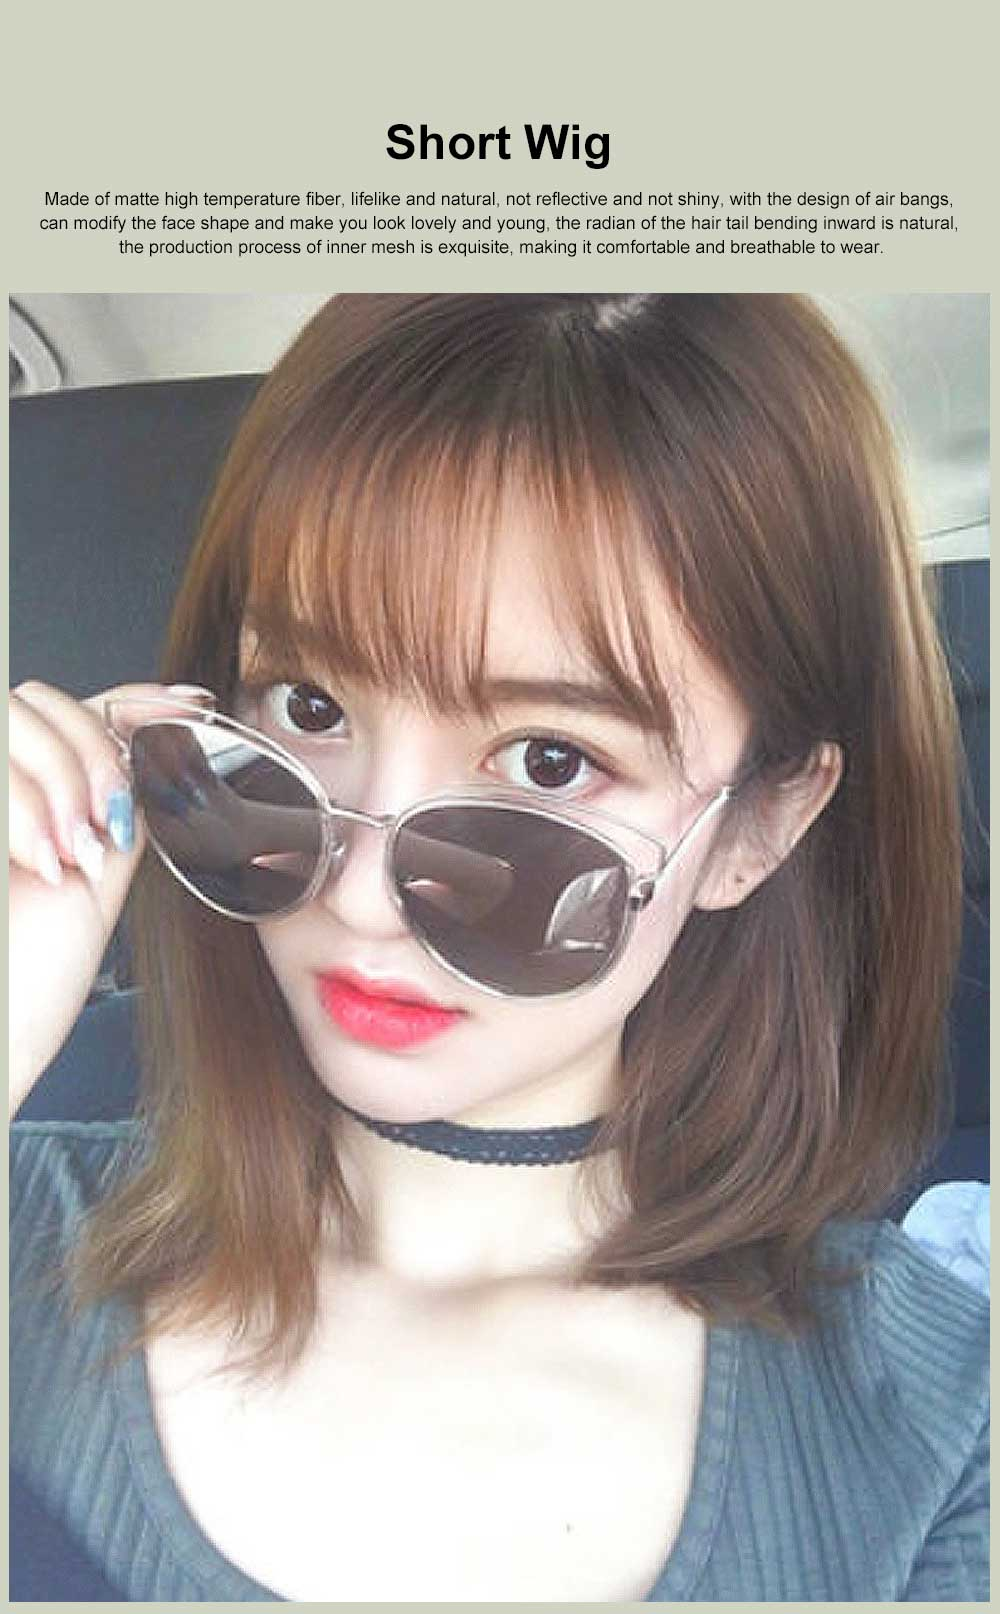 Middle-length Fake Hair for Women, Natural Cute Curly Long Hair with Bangs Head Type Round Face Short Wig 0